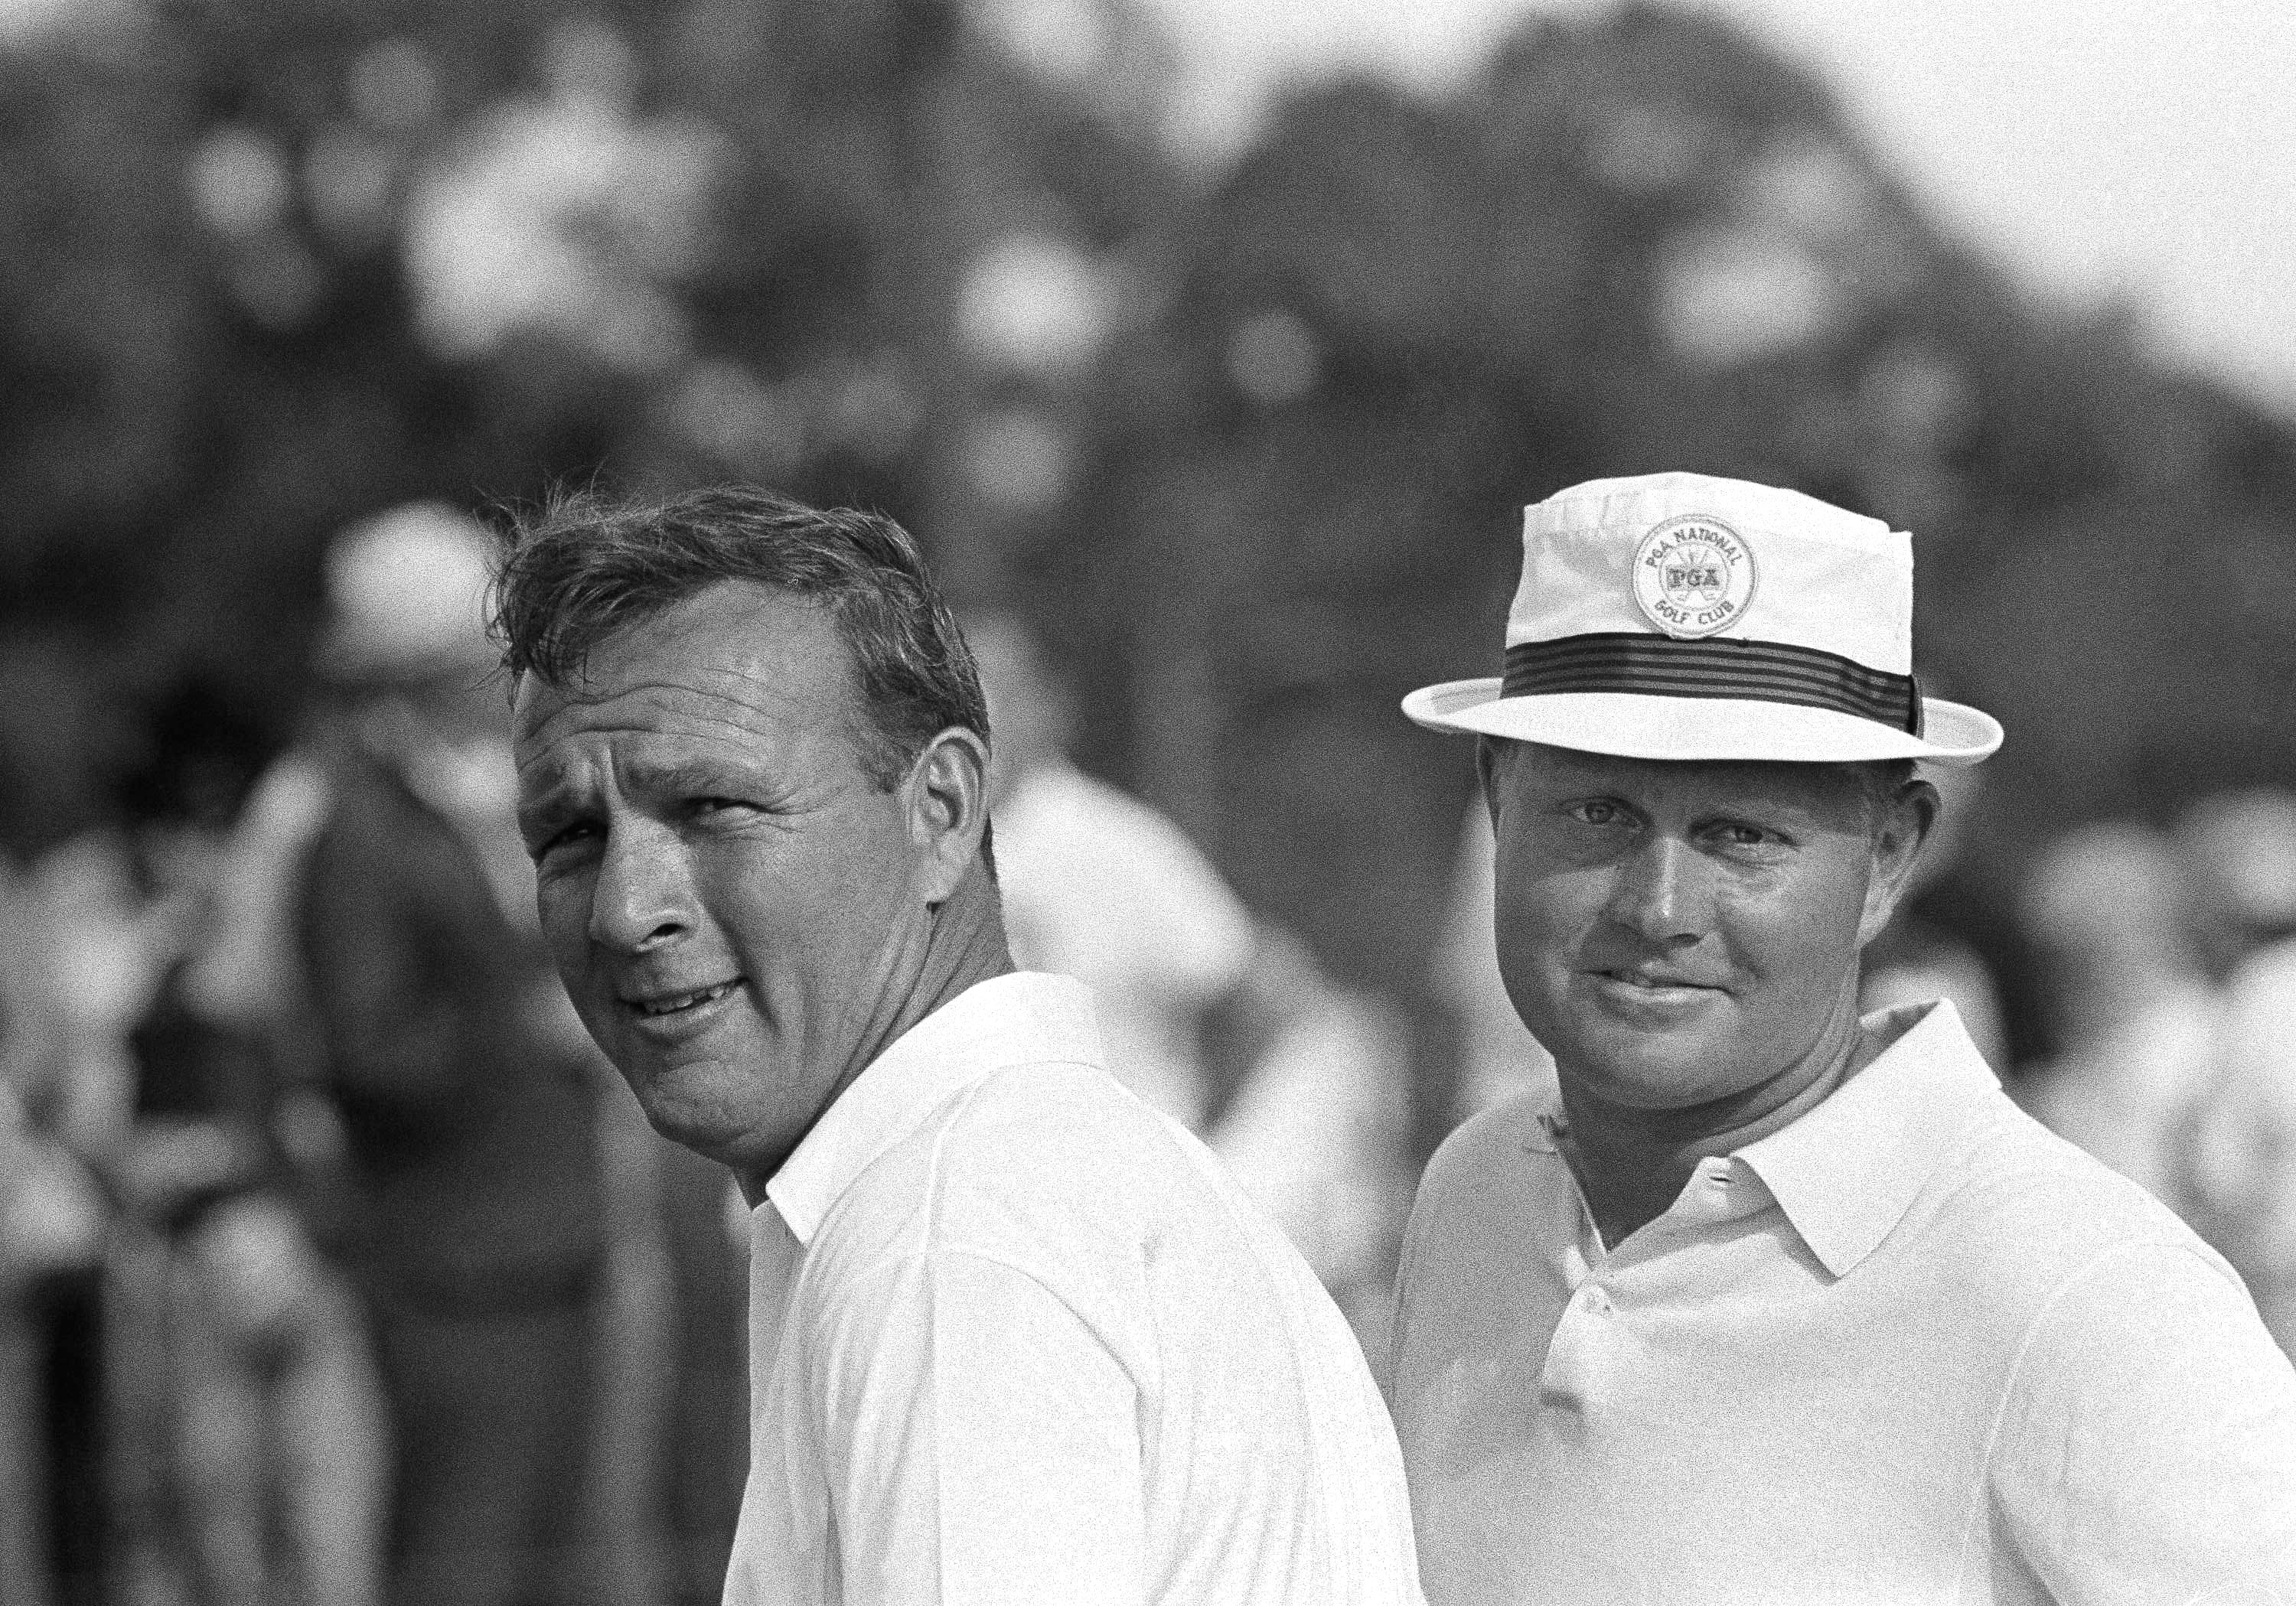 Arnold Palmer, left, and his partner Jack Nicklaus, are two happy golfers after wining the $250,000 PGA National Team Championship with a low score of 256 for 72 holes, Dec. 10, 1966, West Palm Beach, Fla.